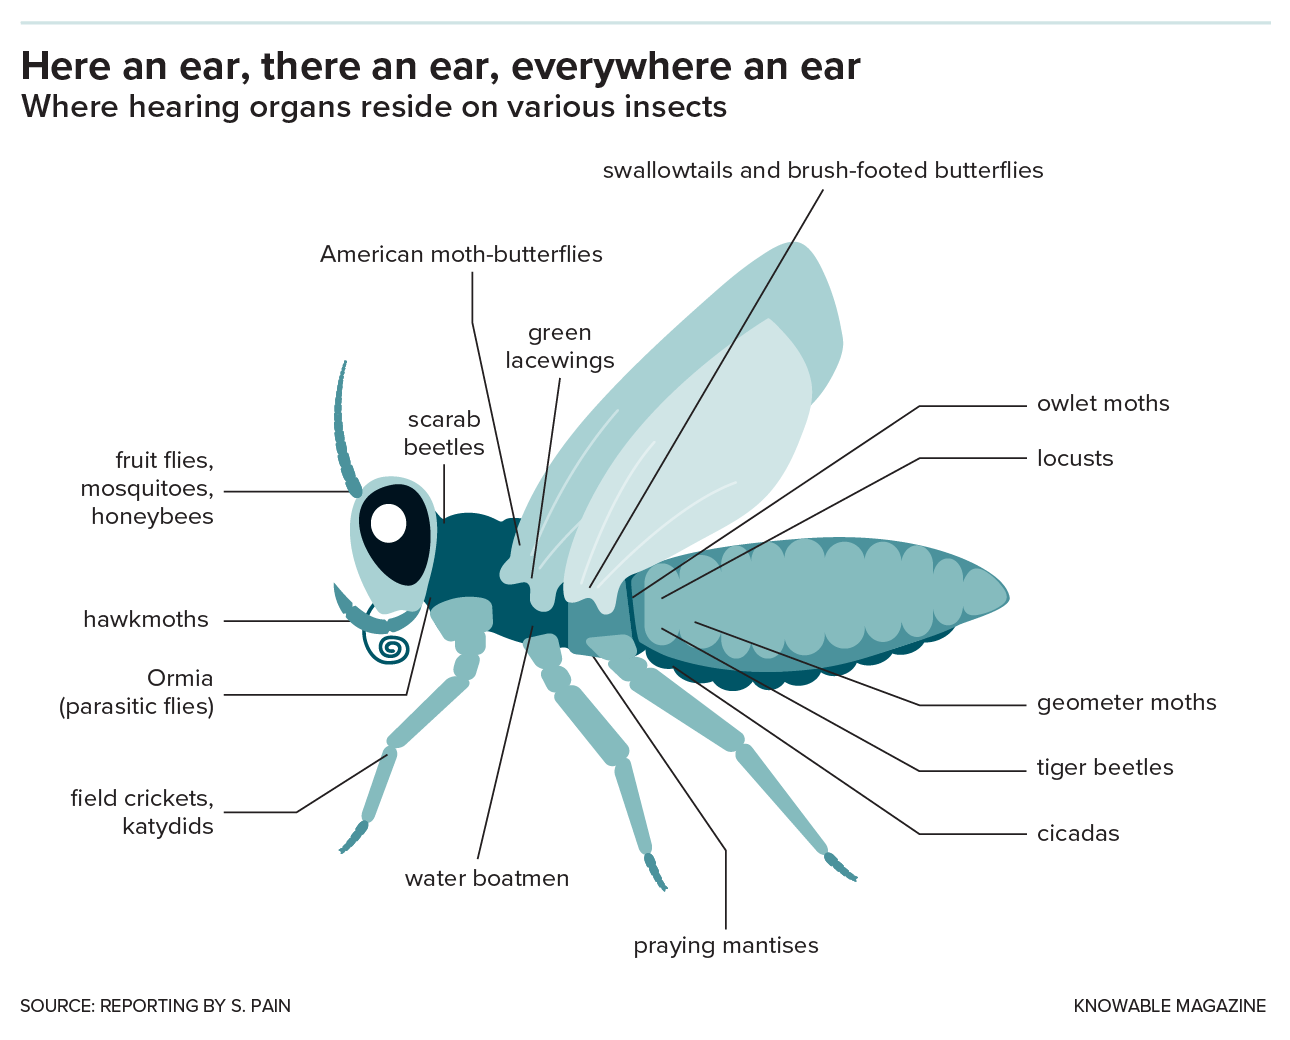 hight resolution of hearing has evolved at least 20 times in insects leading to ears in an astonishing number of different locations as shown on this image of a generalized